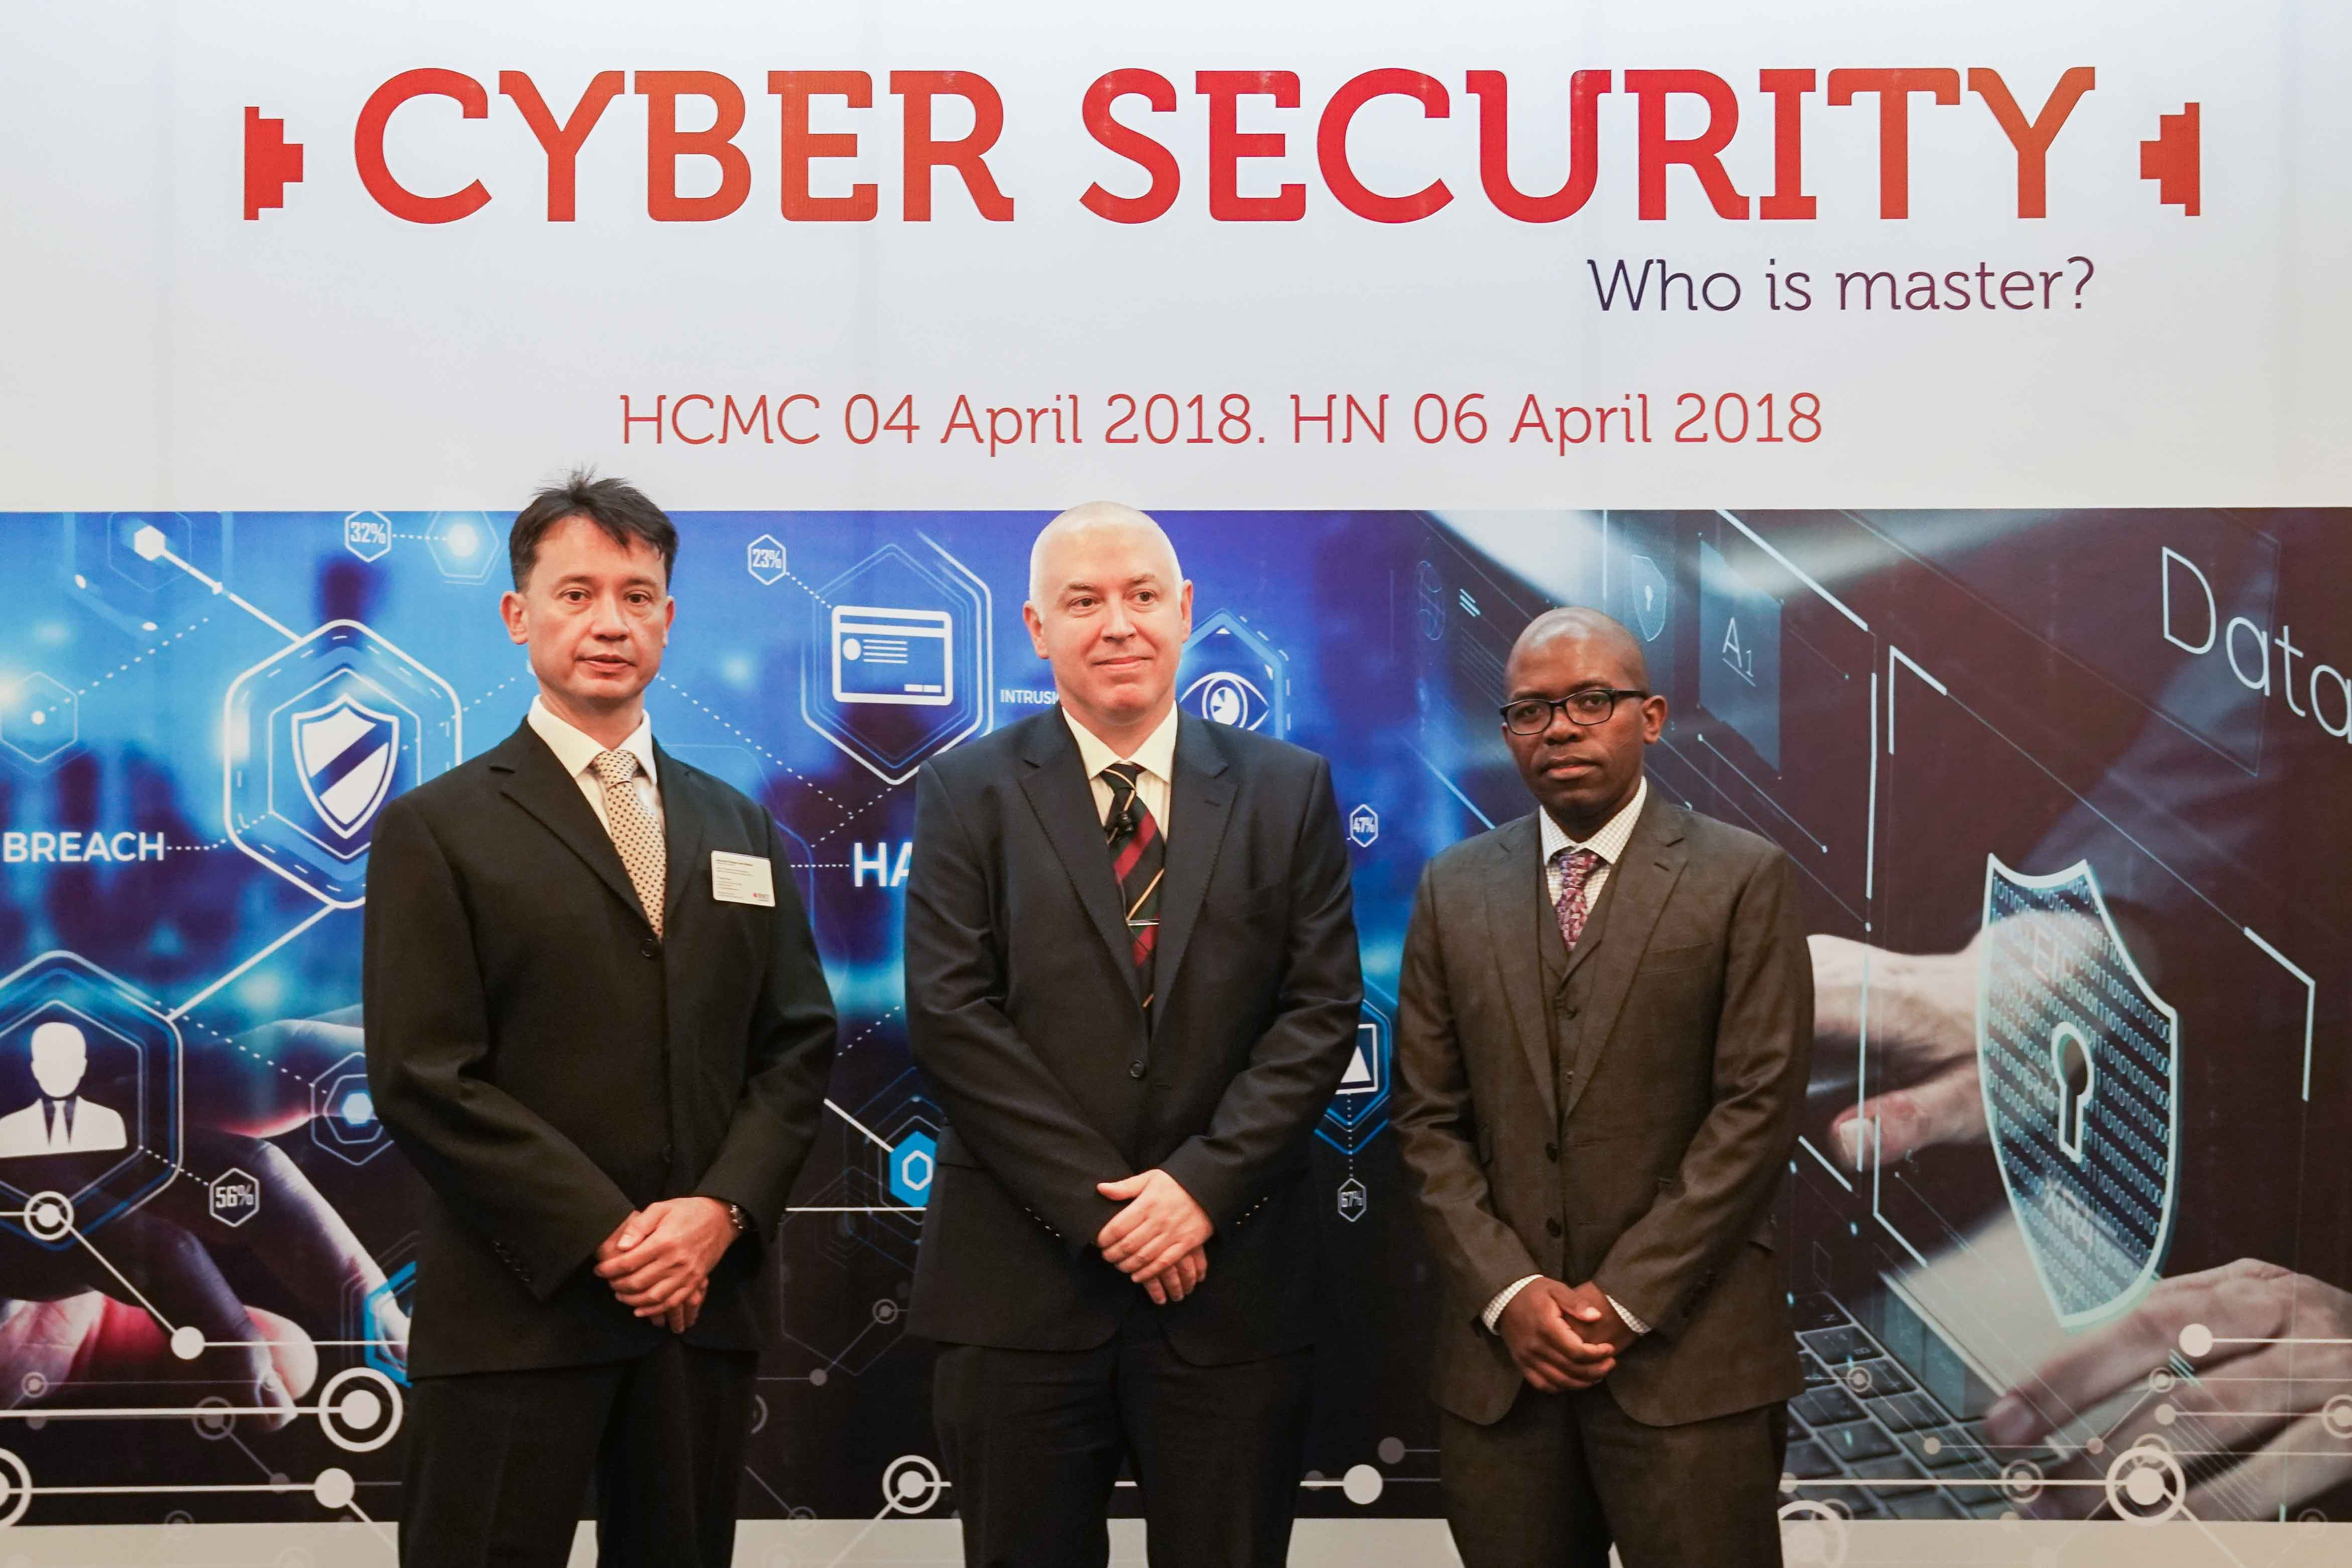 (From left to right) Associate Professor Jerry Watkins (RMIT Vietnam Director of the Centre of Digital Excellence), Professor Matthew Warren (Deputy Director of the Centre for Cyber Security Research, Deakin University), and Associate Professor Mathews Nkhoma (Head of the School of Business & Management, RMIT Vietnam) at the symposia Cyber Security: Who is master?